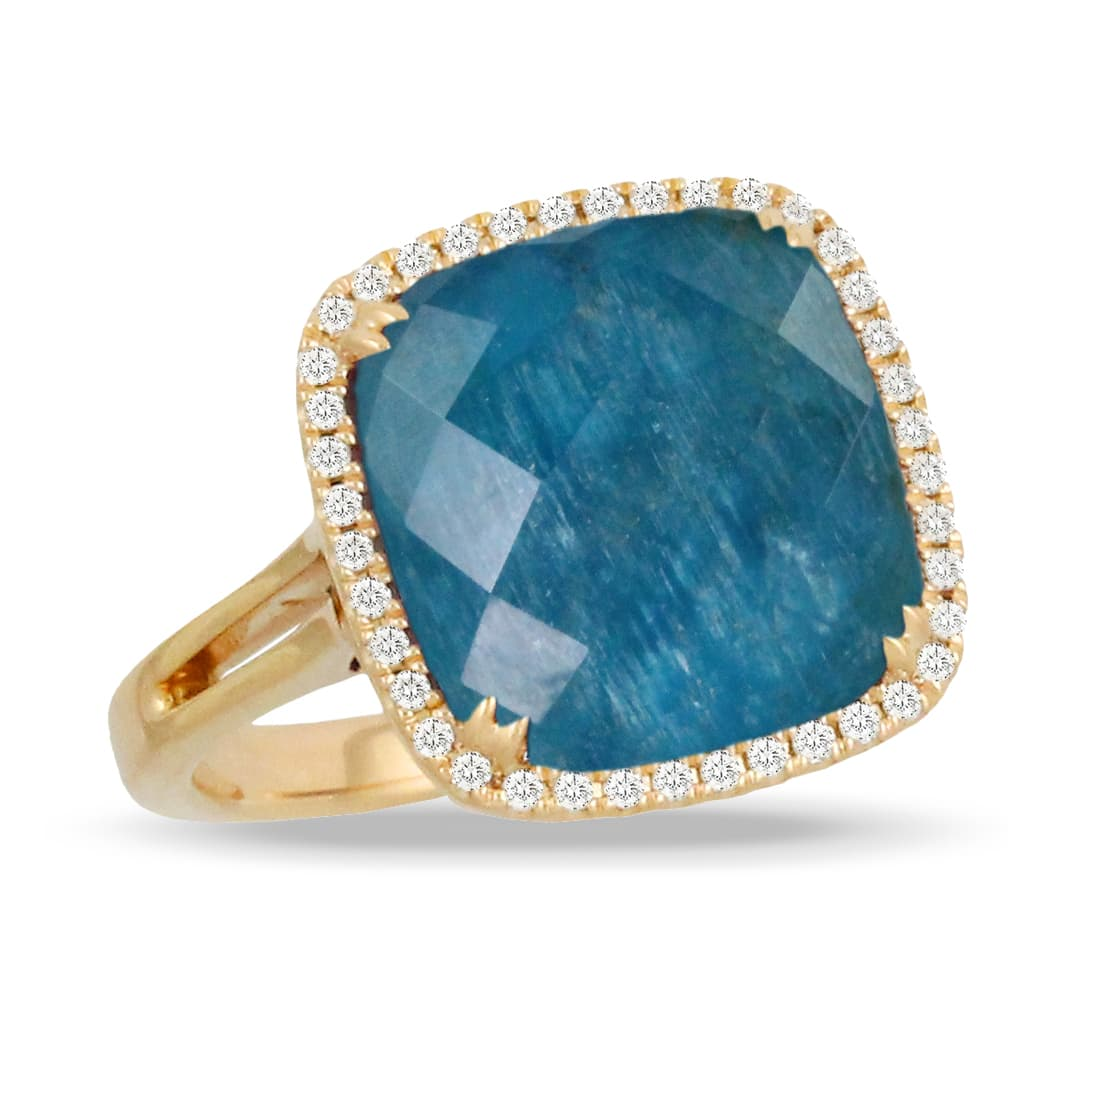 18K YELLOW GOLD DIAMOND RING WITH CLEAR QUARTZ OVER APATITE